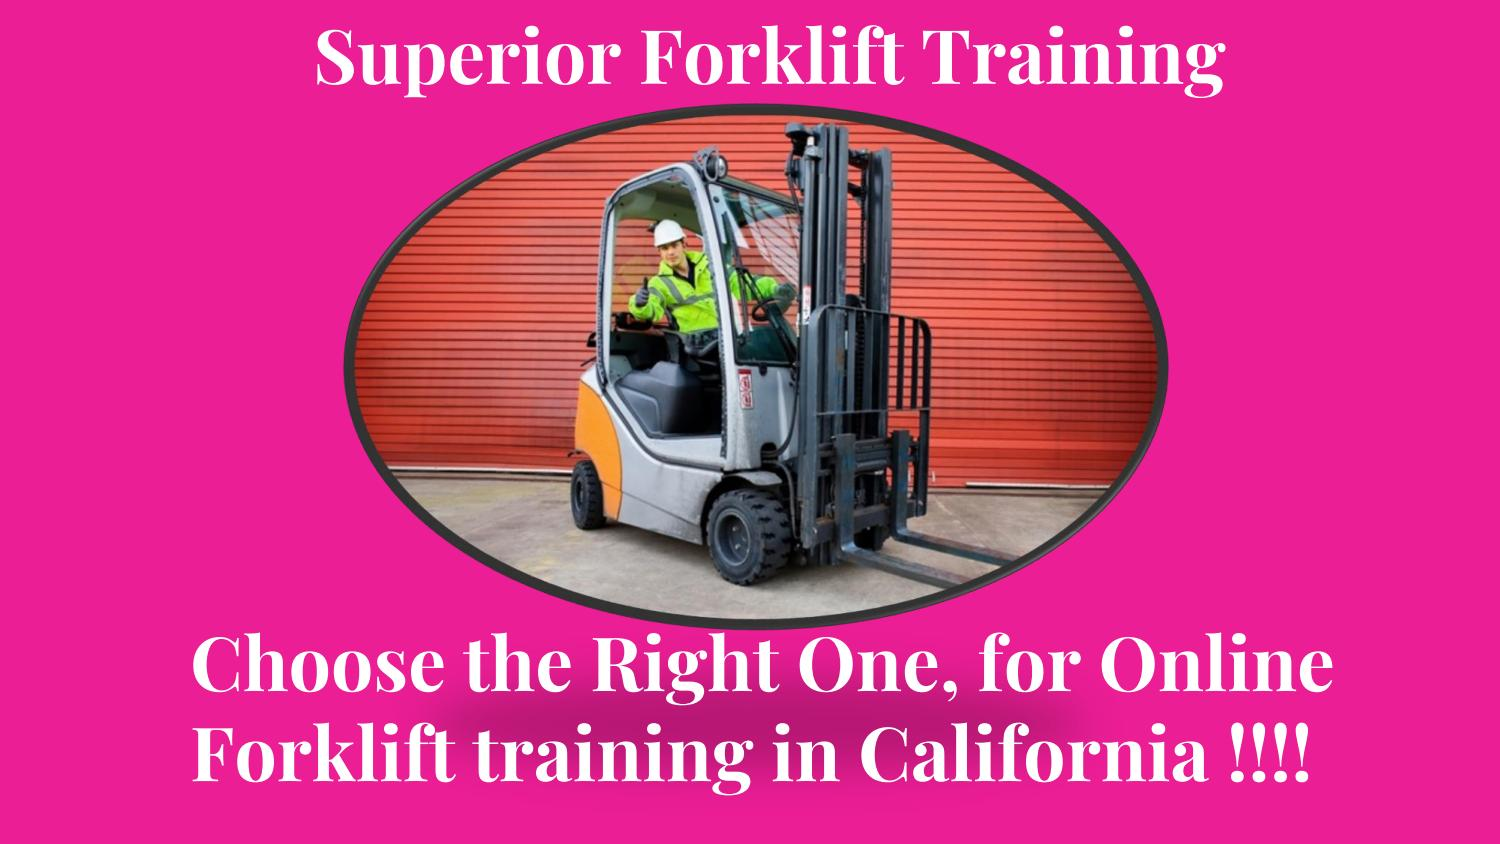 Choose the right one for online forklift training in california choose the right one for online forklift training in california by superior forklift training issuu xflitez Images